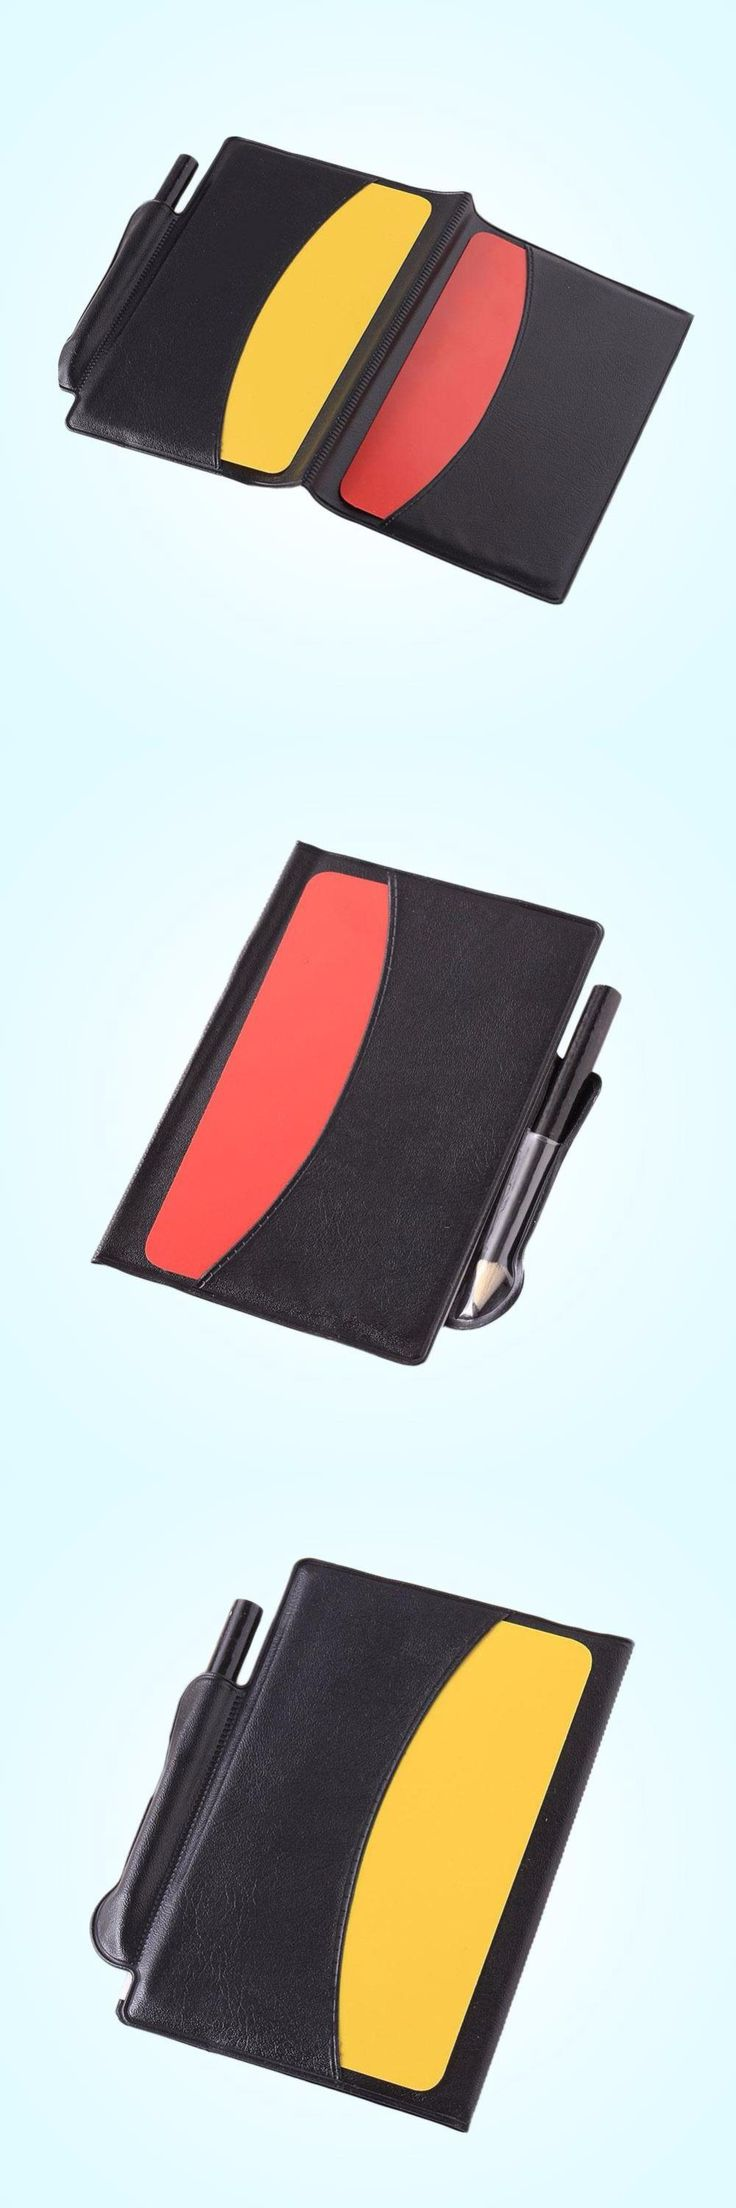 [Visit to Buy] Football Referee Red Card Yellow Card Judge Case Soccer Wallet Pencil Notebook Set Professional Supplies equipment #Advertisement